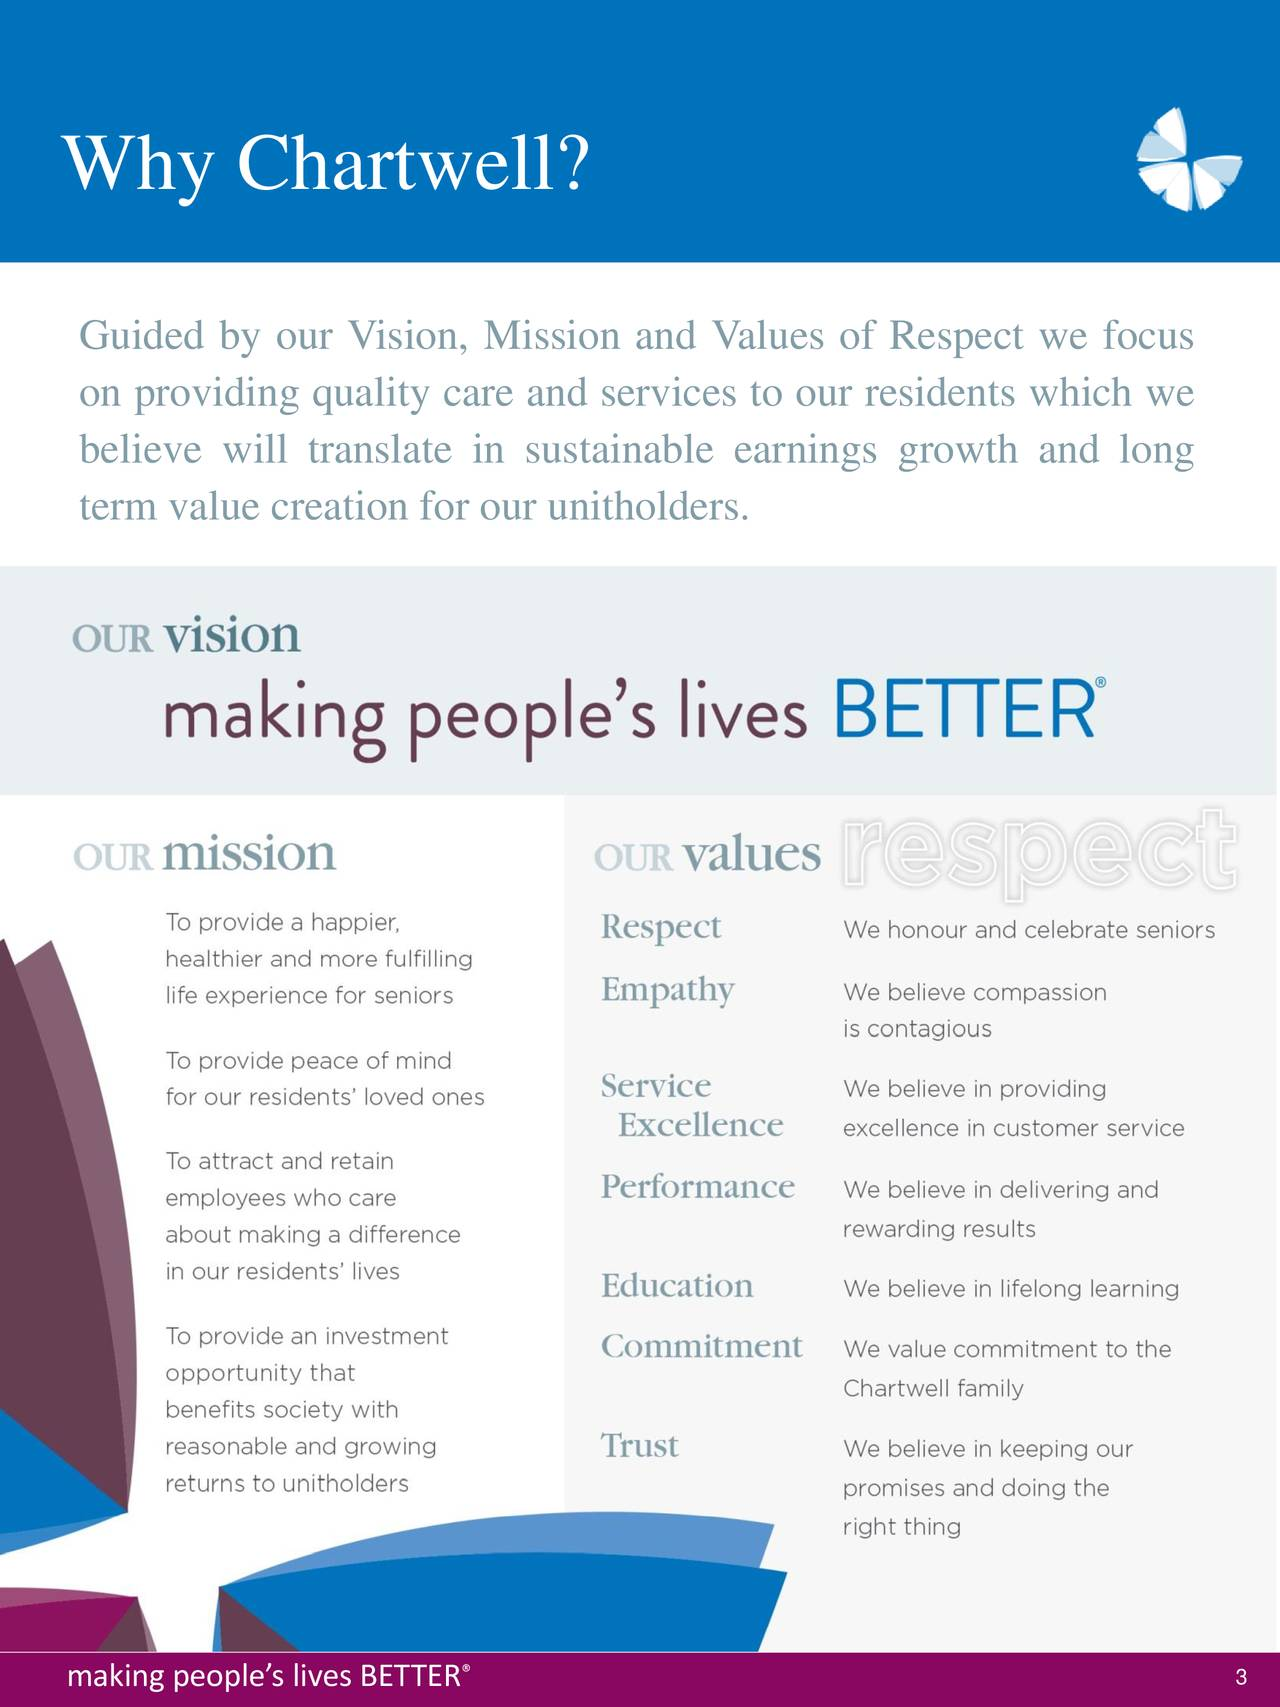 Guided by our Vision, Mission and Values of Respect we focus on providing quality care and services to our residents which we believe will translate in sustainable earnings growth and long term value creation for our unitholders. making people's lives BETTER 3